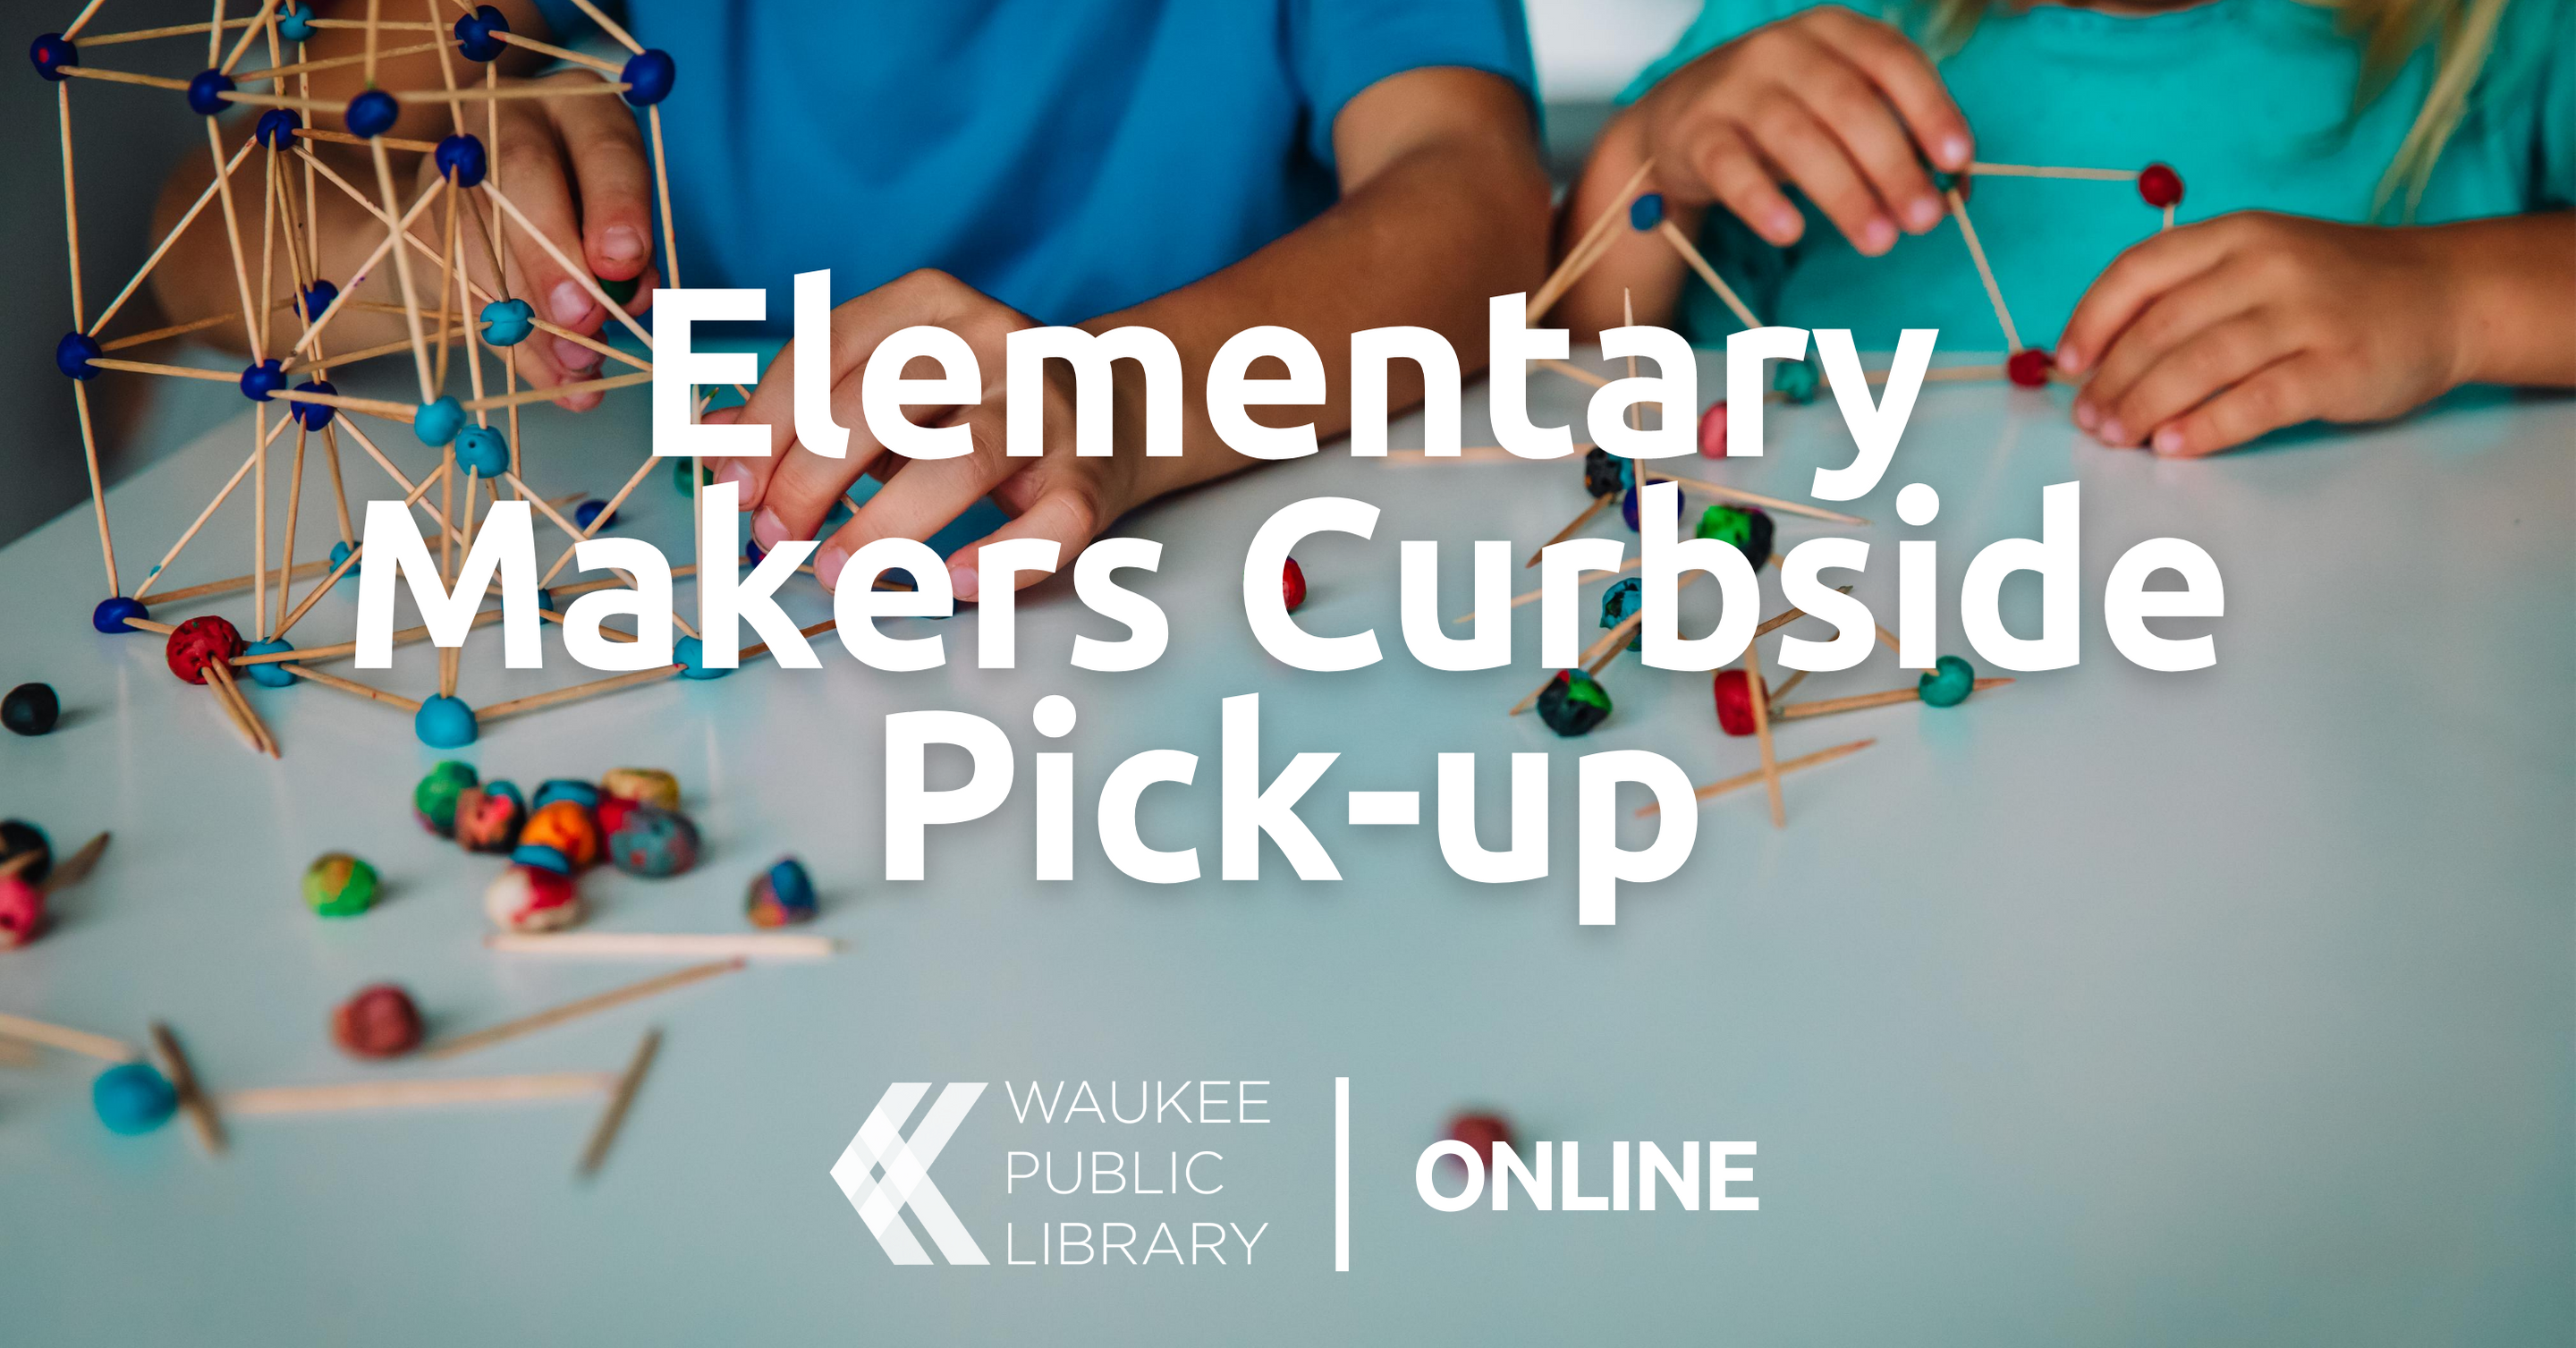 Elementary Makers Curbside Pick-up